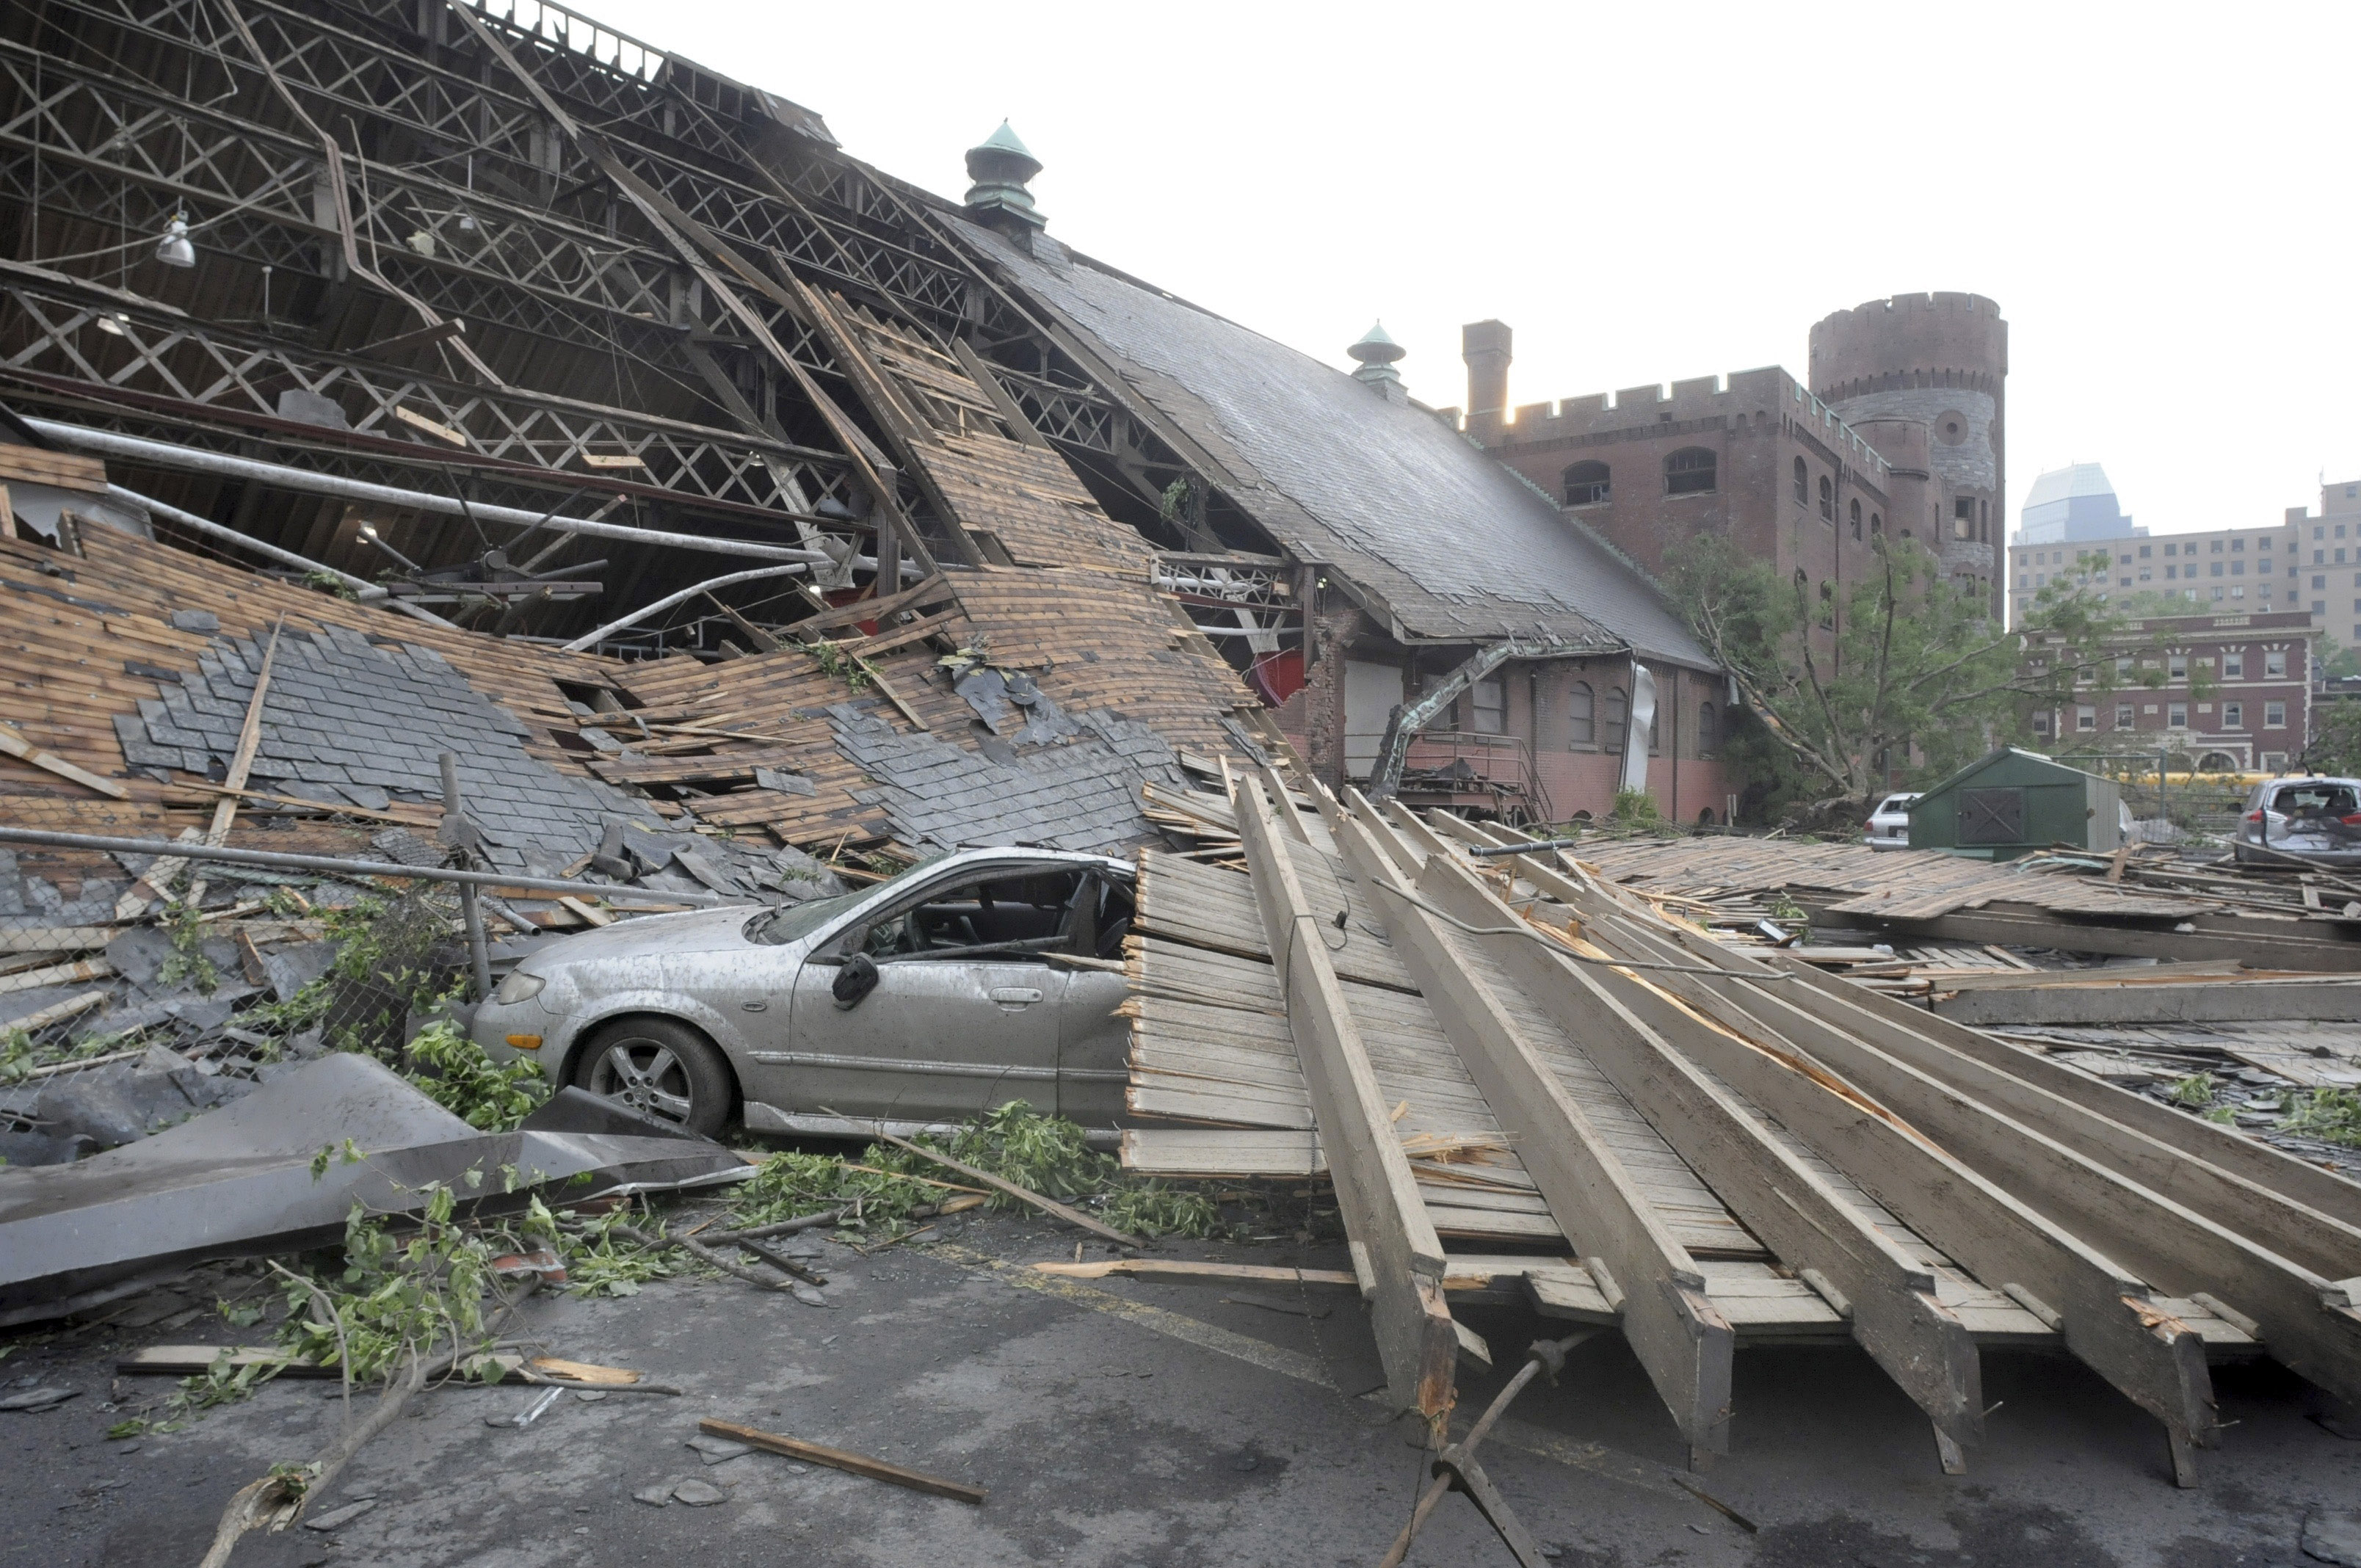 A smashed car sits next to the South End Community Center, which lost most of its roof in a tornado that touched down in Springfield, Mass., Wednesday, June 1, 2011.